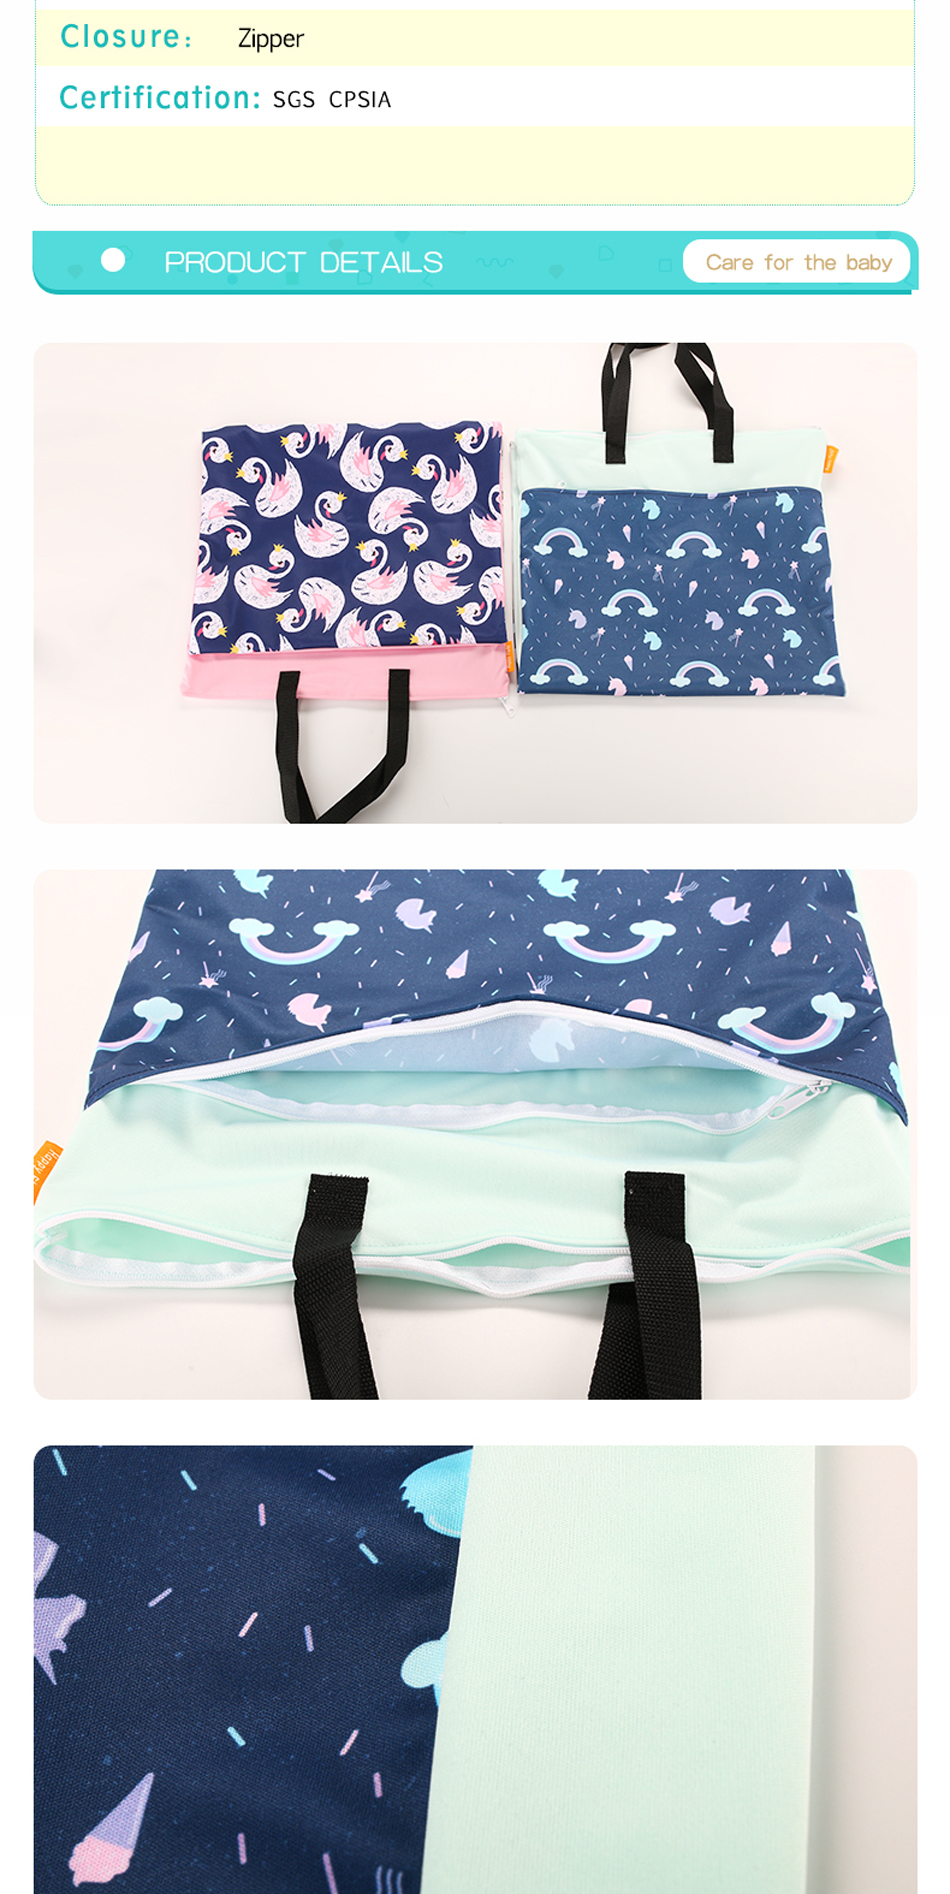 Happy flute 1 pcs Large Hanging Wet/Dry Pail Bag for Cloth Diaper,Inserts,Nappy, Laundry With Two Zippered Waterproof,Reusable